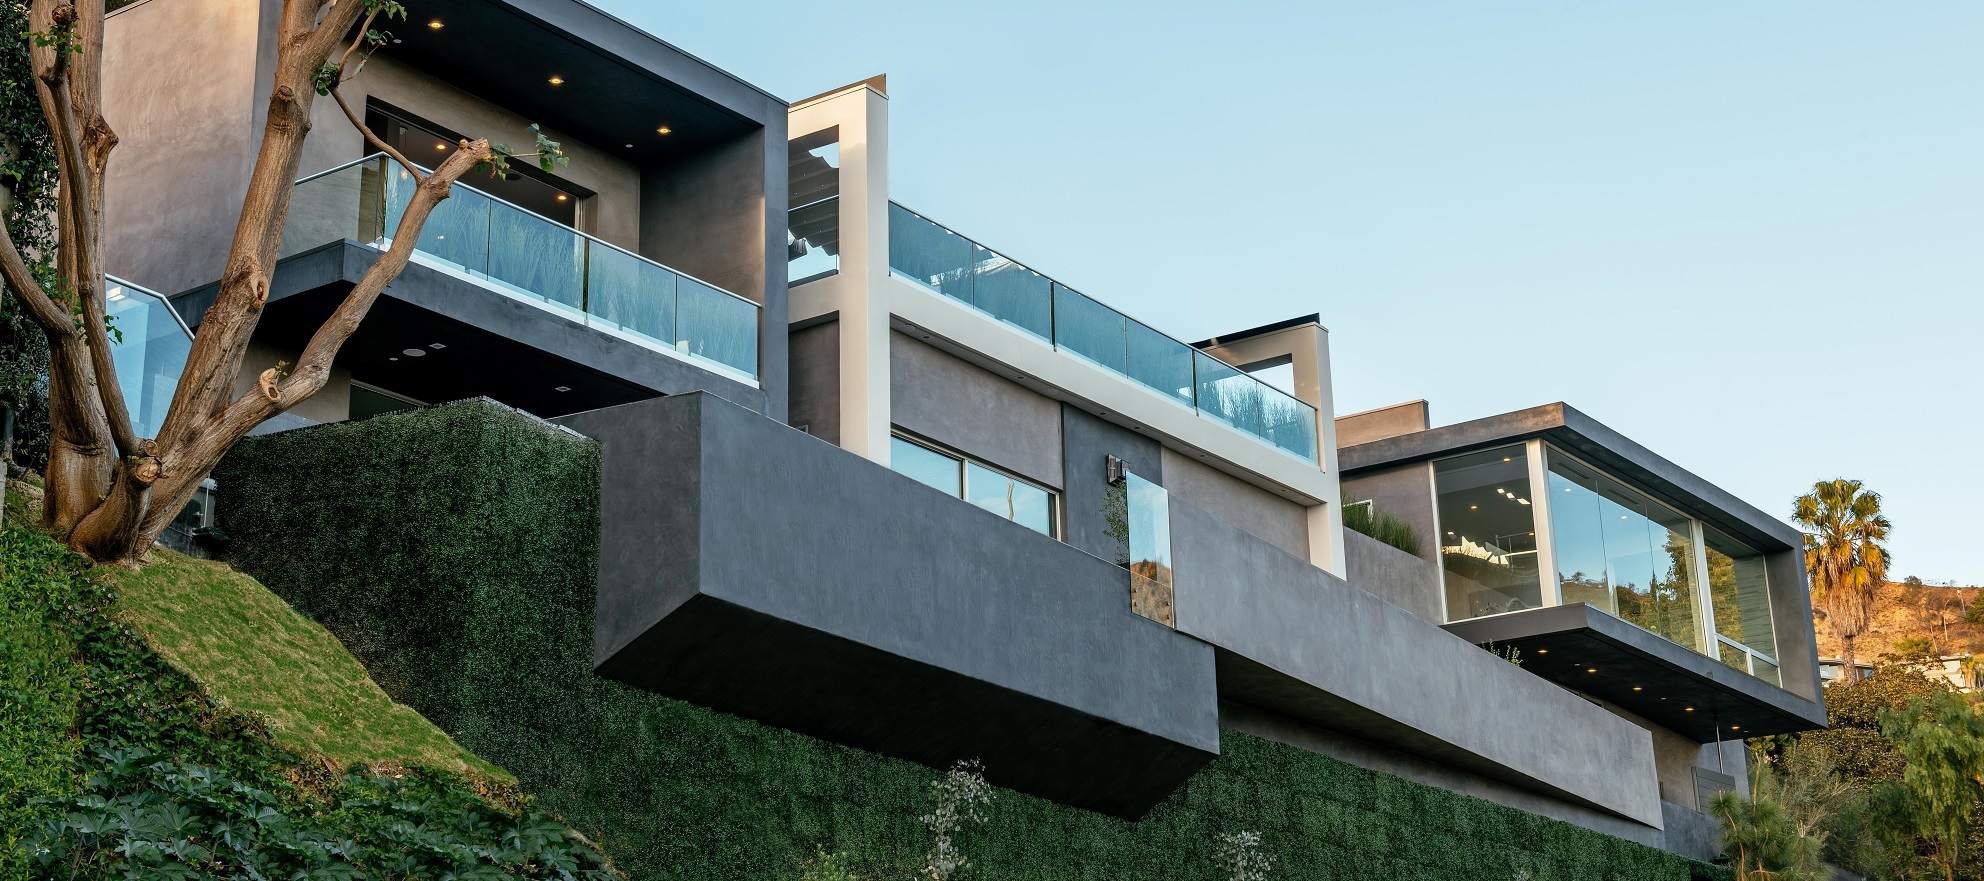 Luxury listing: artful architecture overlooking the city